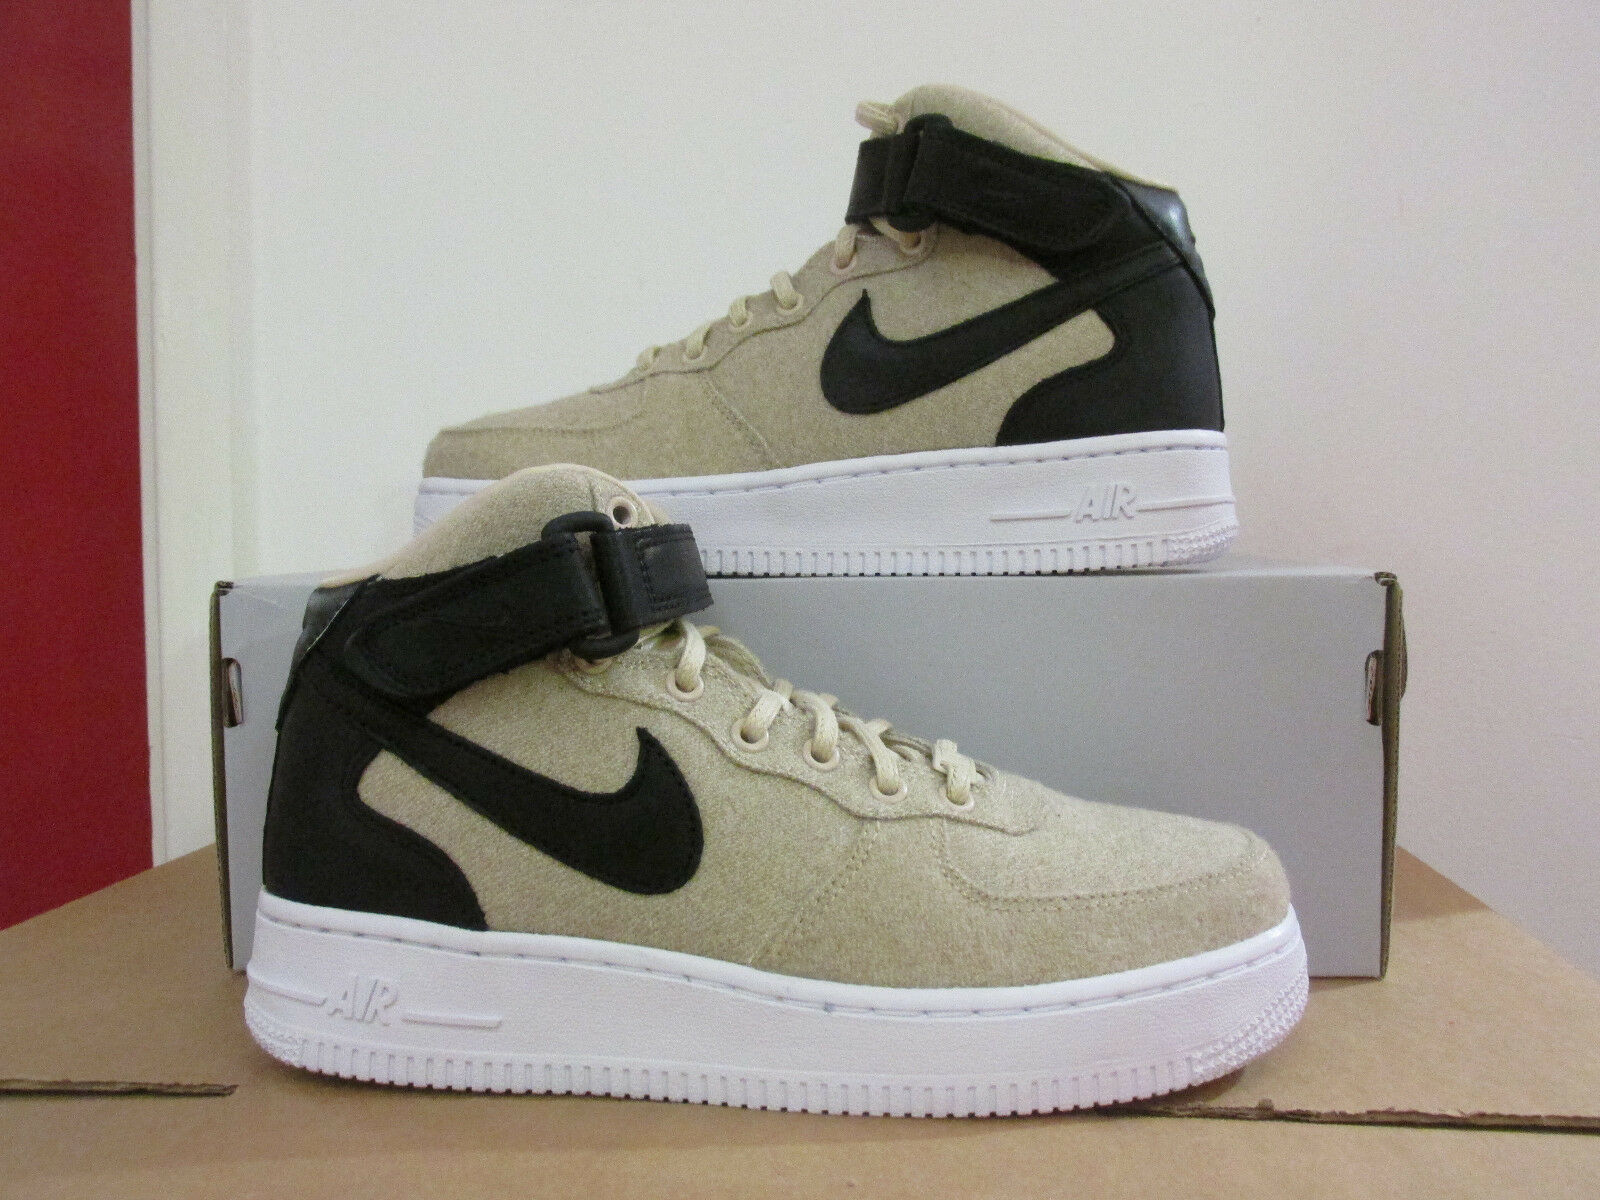 cheaper a60b3 f39f8 Nike Air Force 1 07 Mid lthr PMR Hi Hi Hi Top Trainers 857666 001  autorización